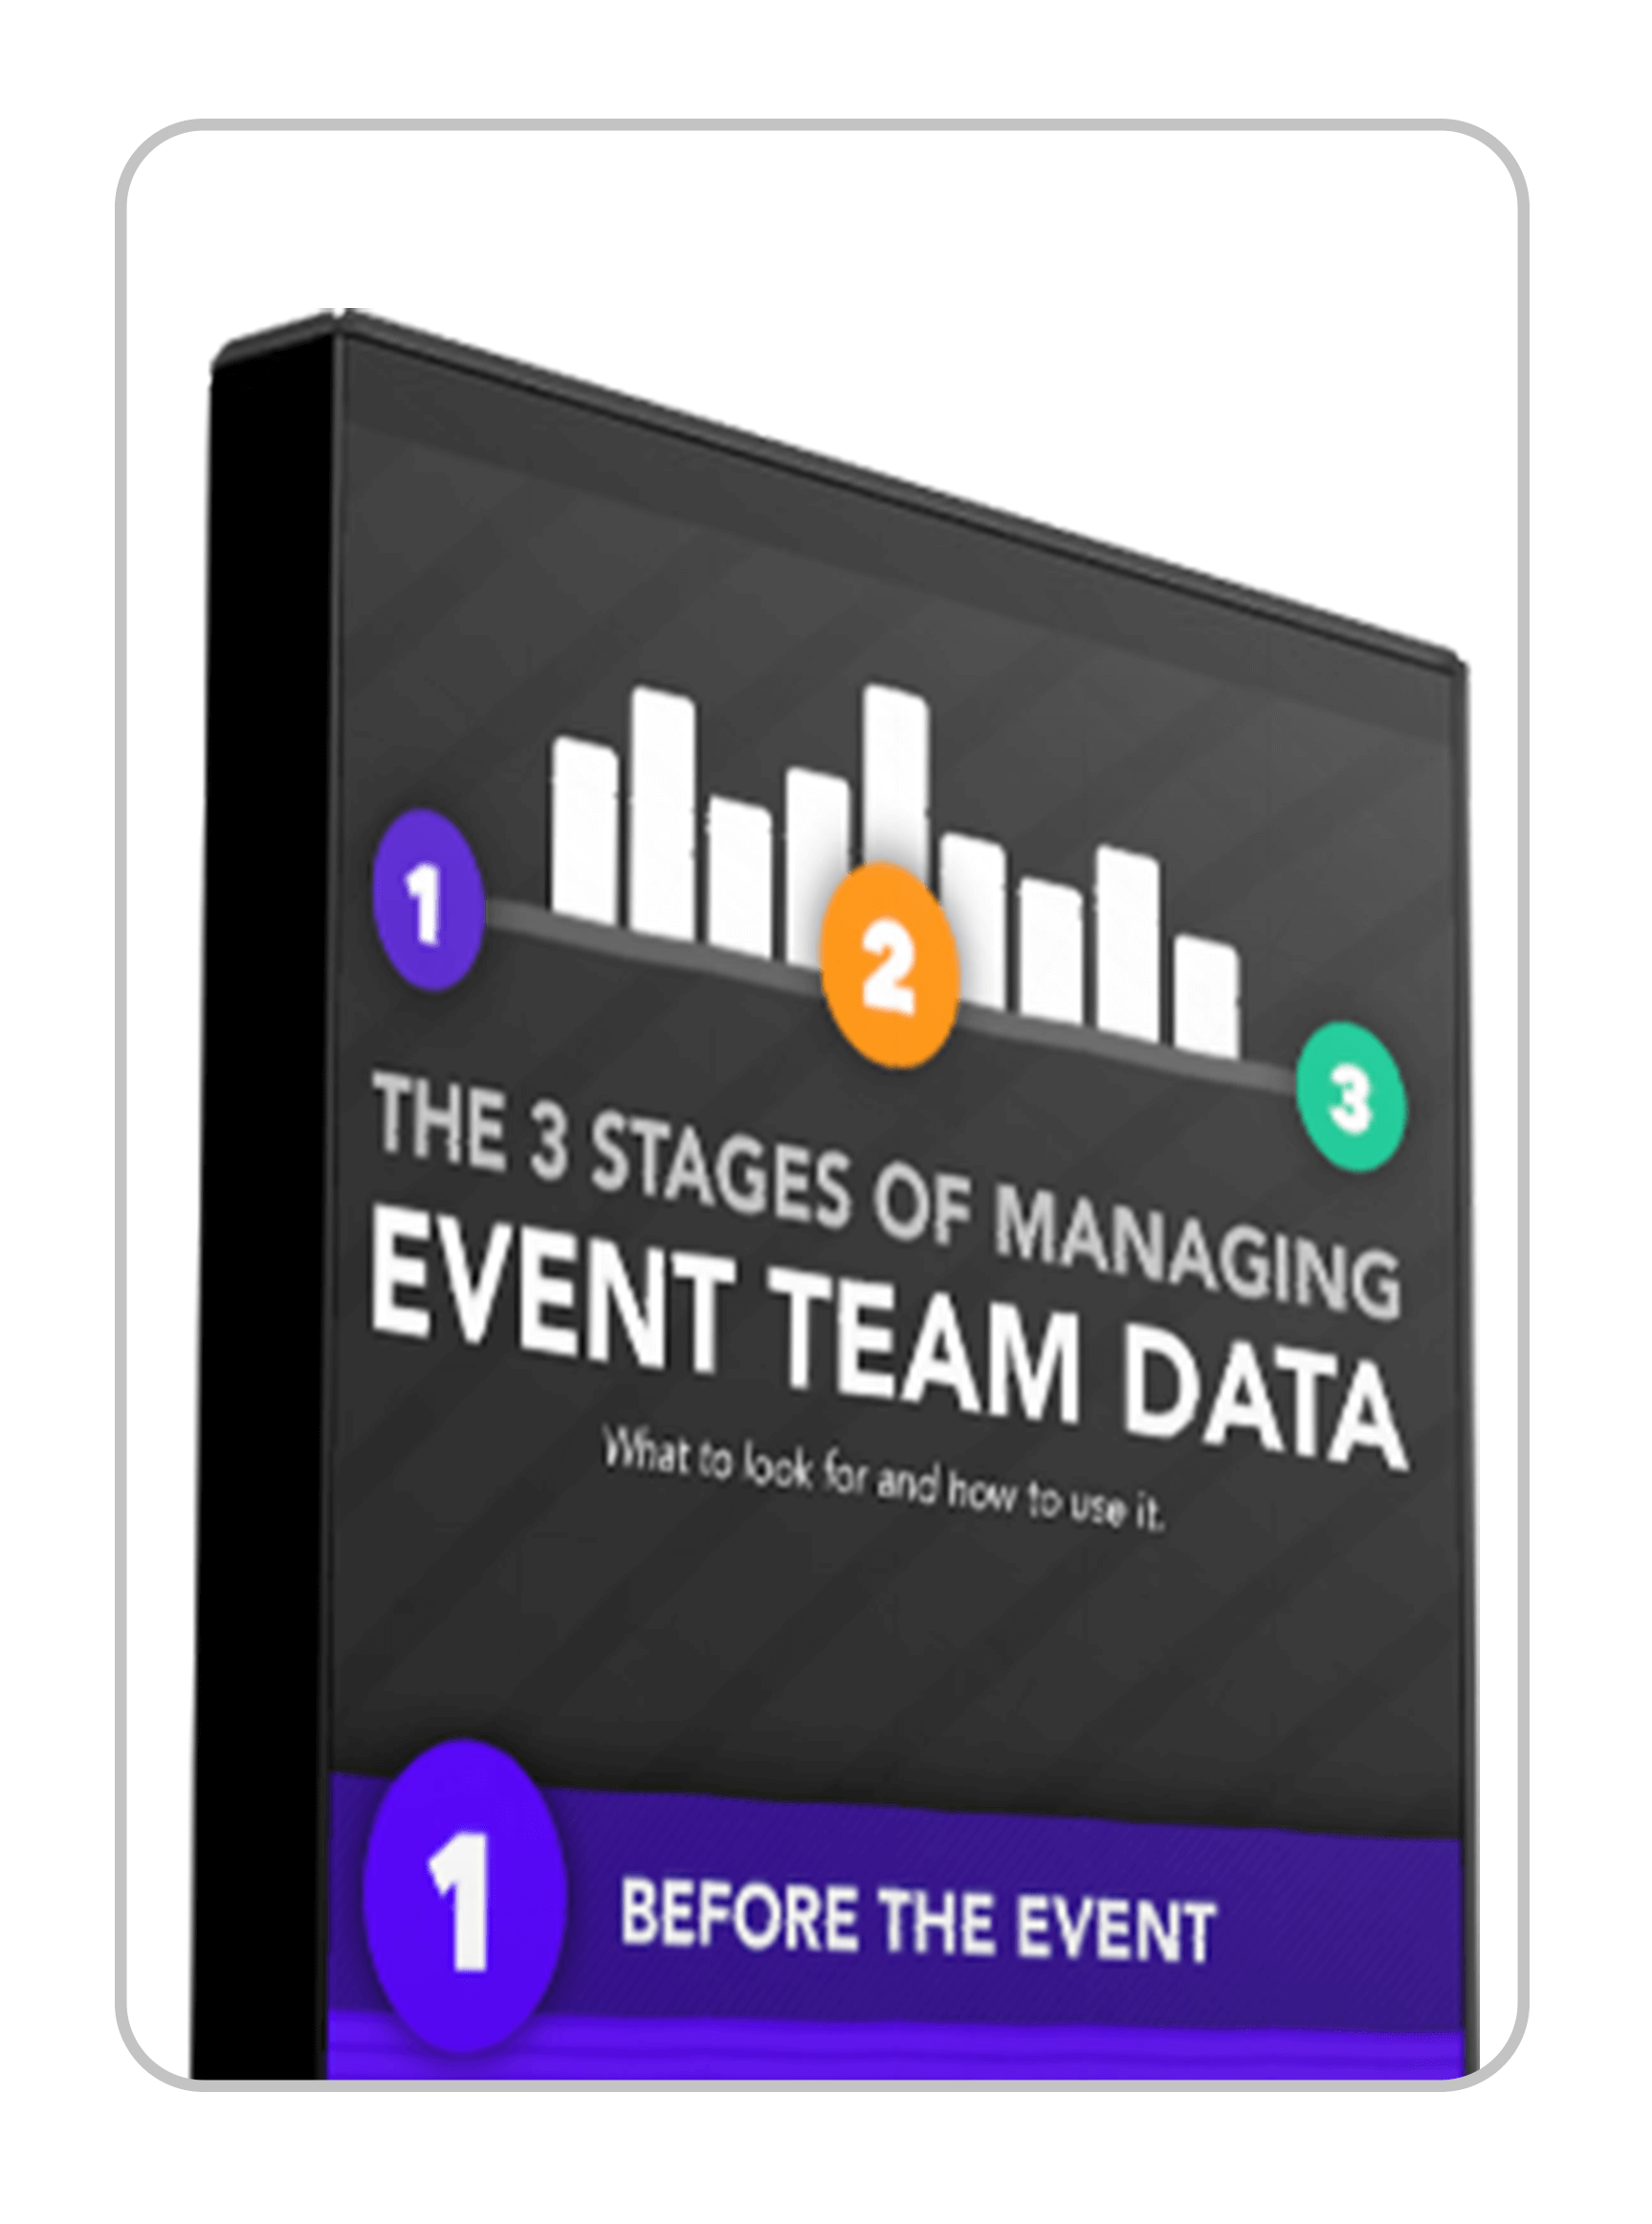 The 3 Stages of Managing Event Team Data Infographic